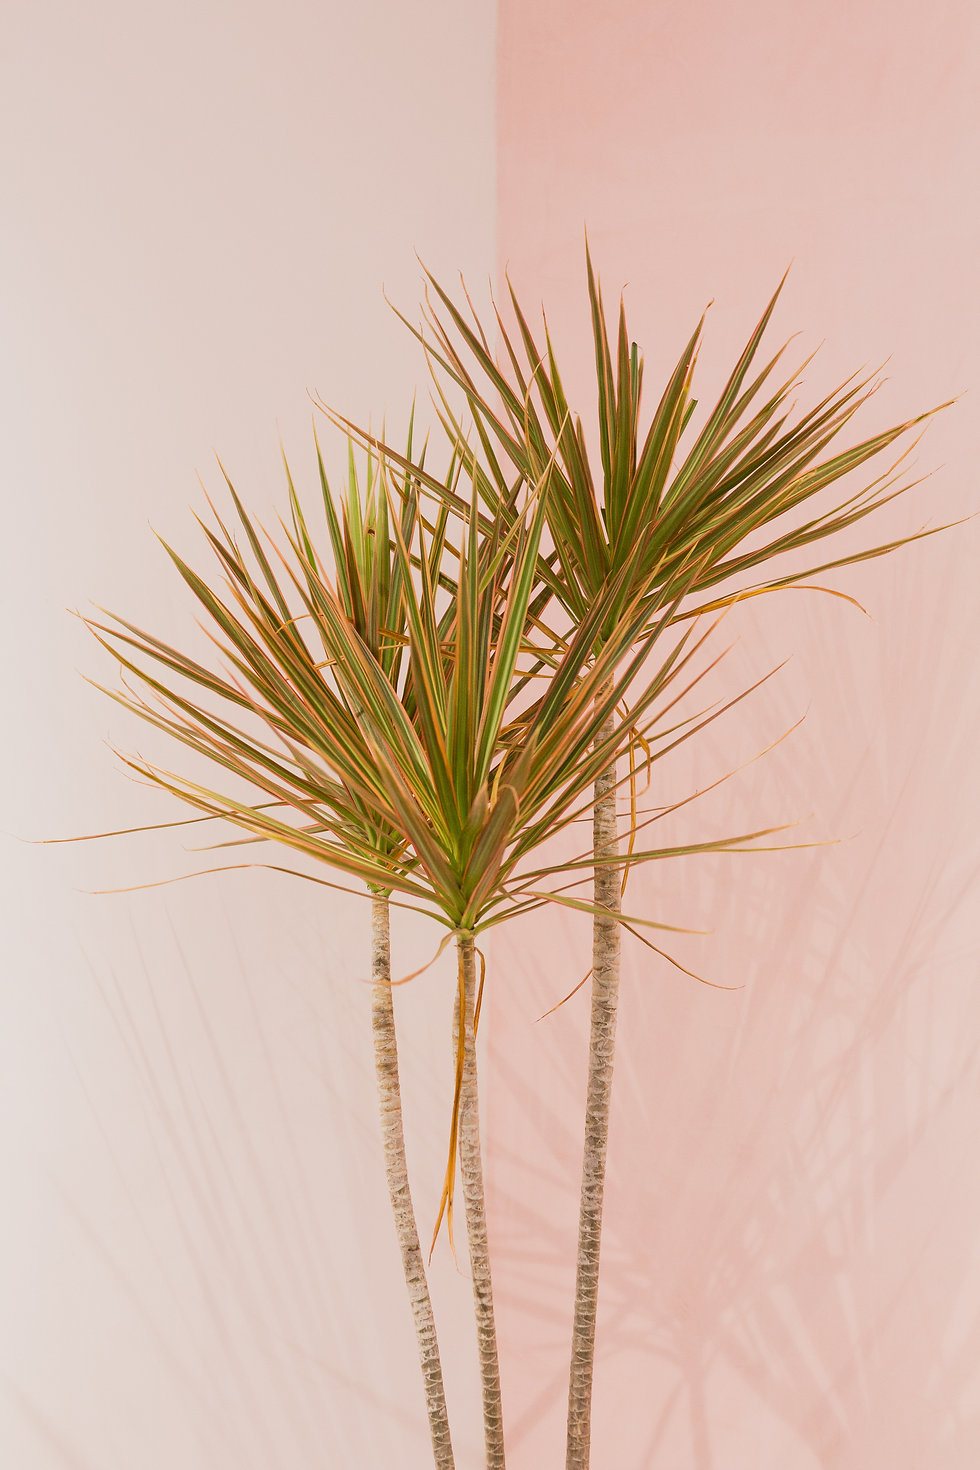 House plant wth pink background